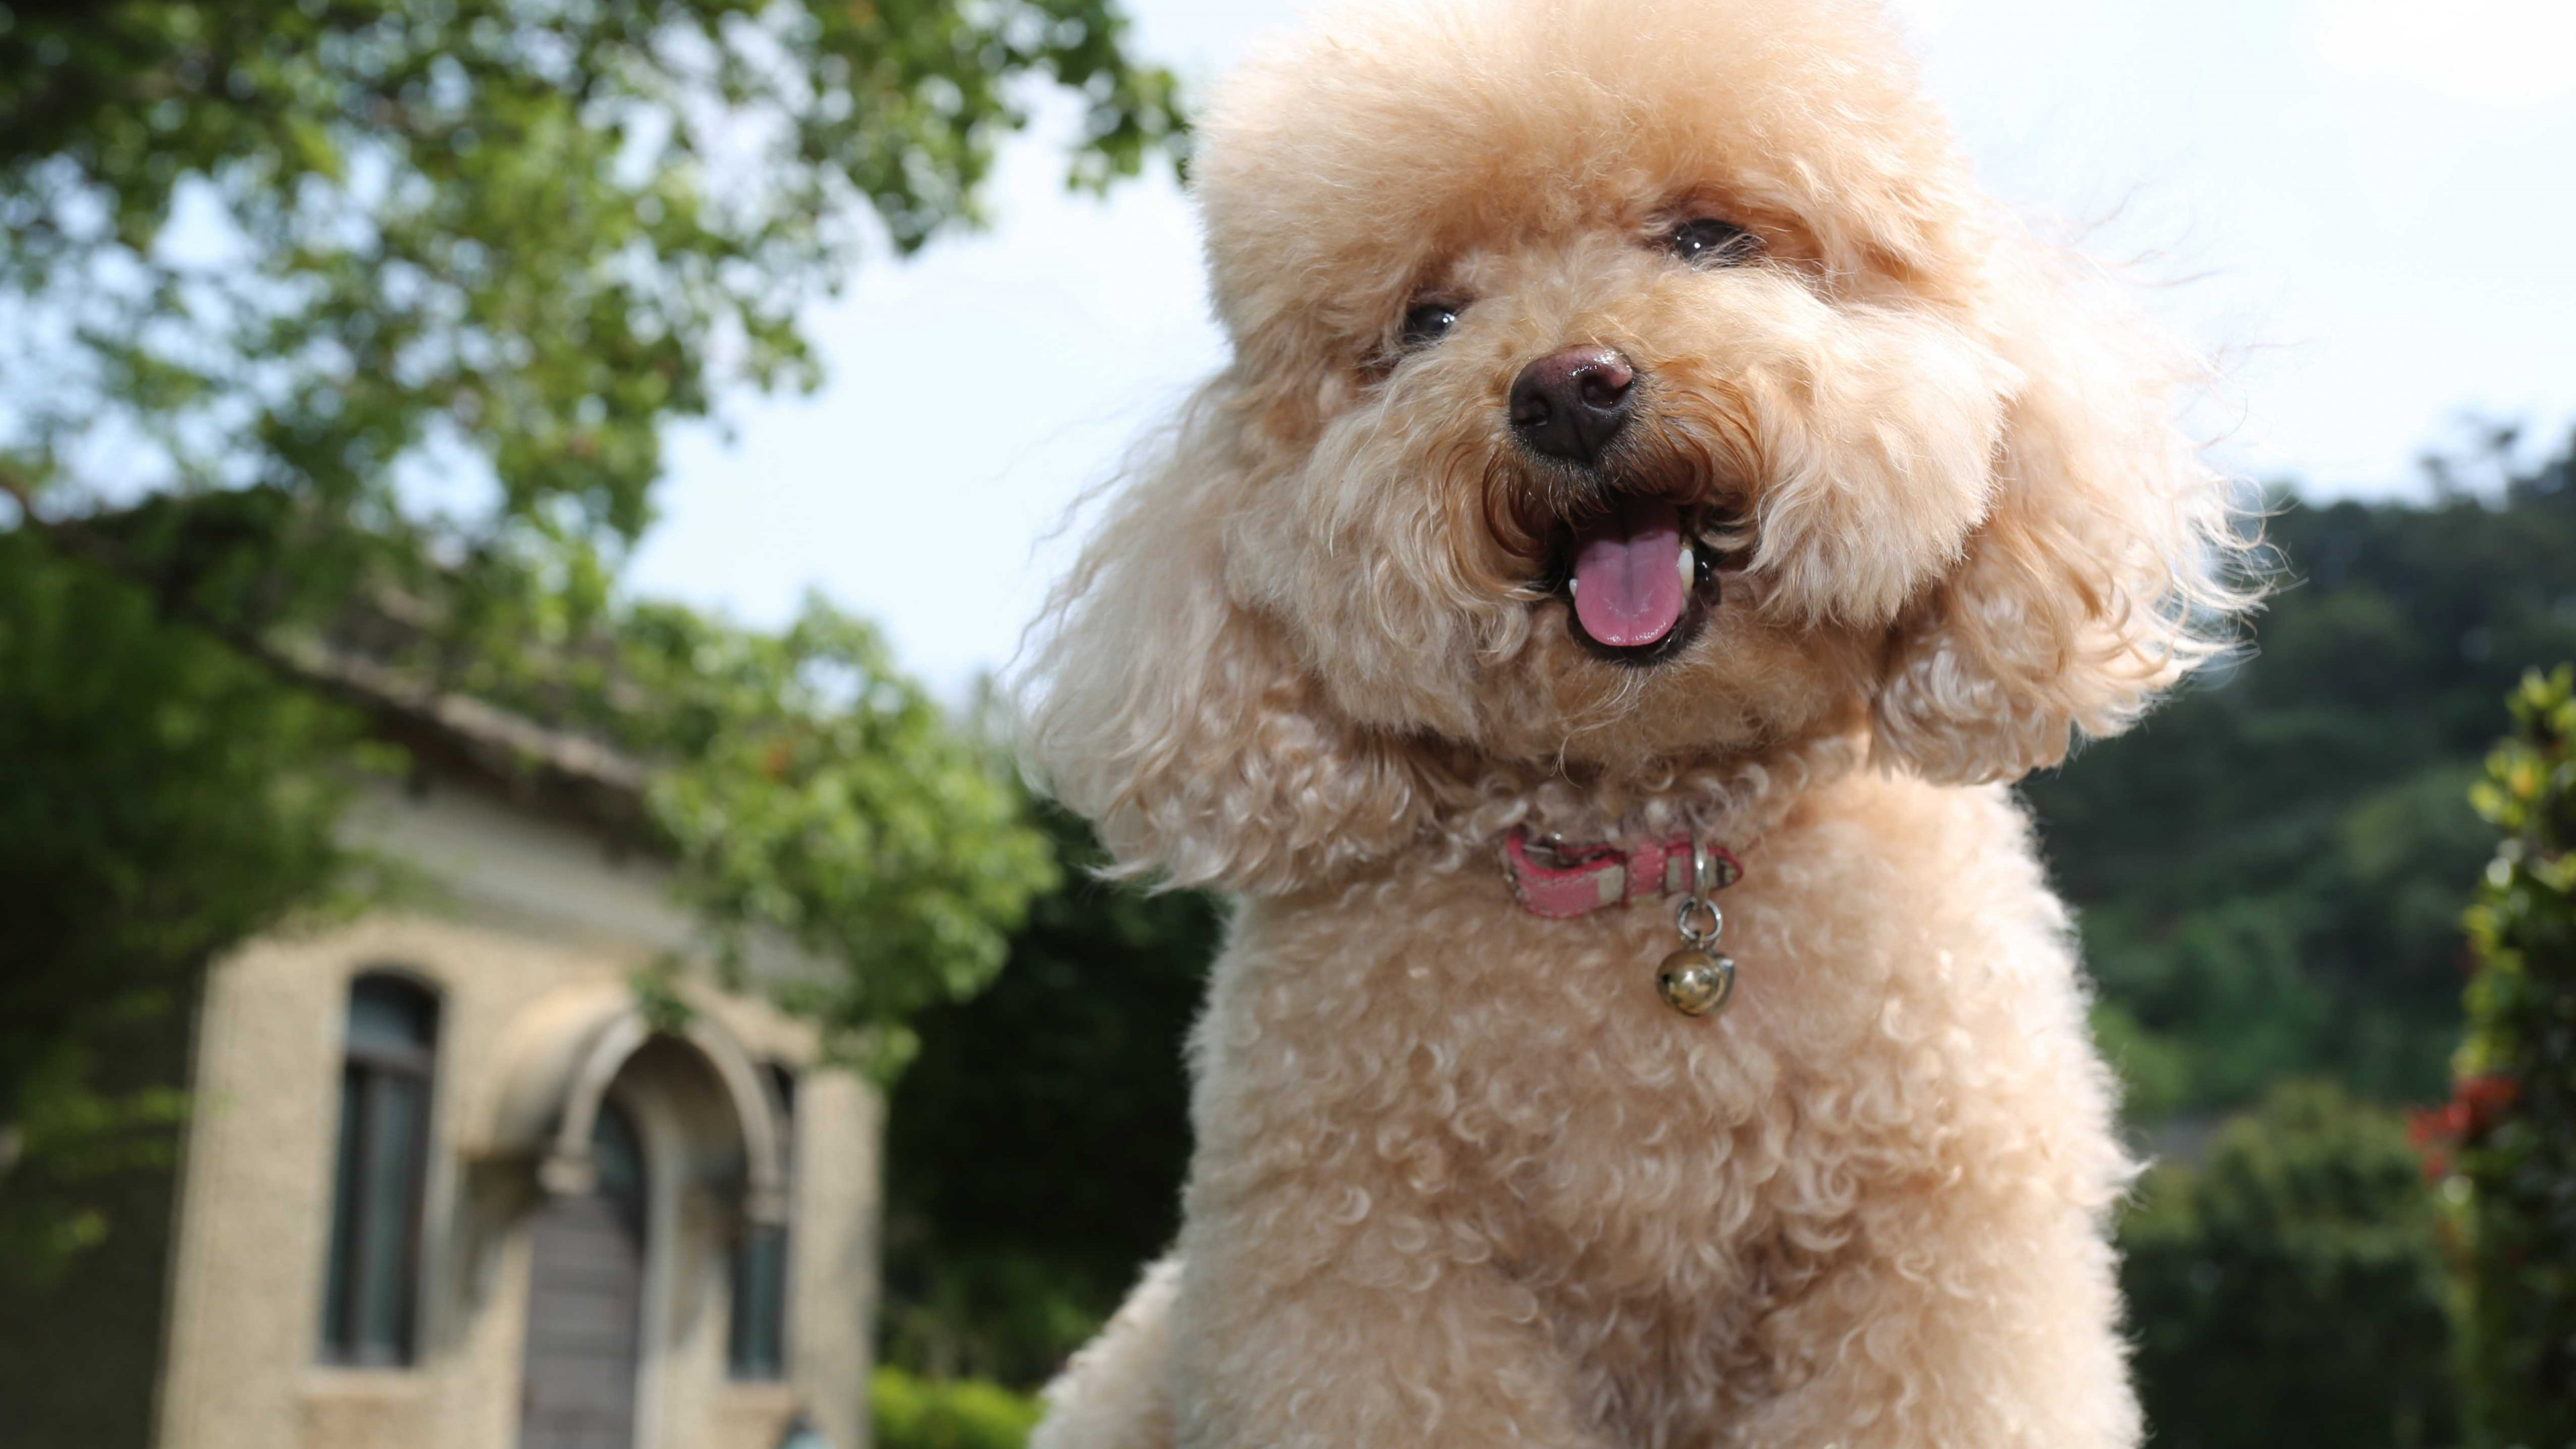 Wallpaper Toy Poodle Dog Puppy Funny Pets Funny Animals Animals Wallpaper Download High Resolution 4k Wallpaper